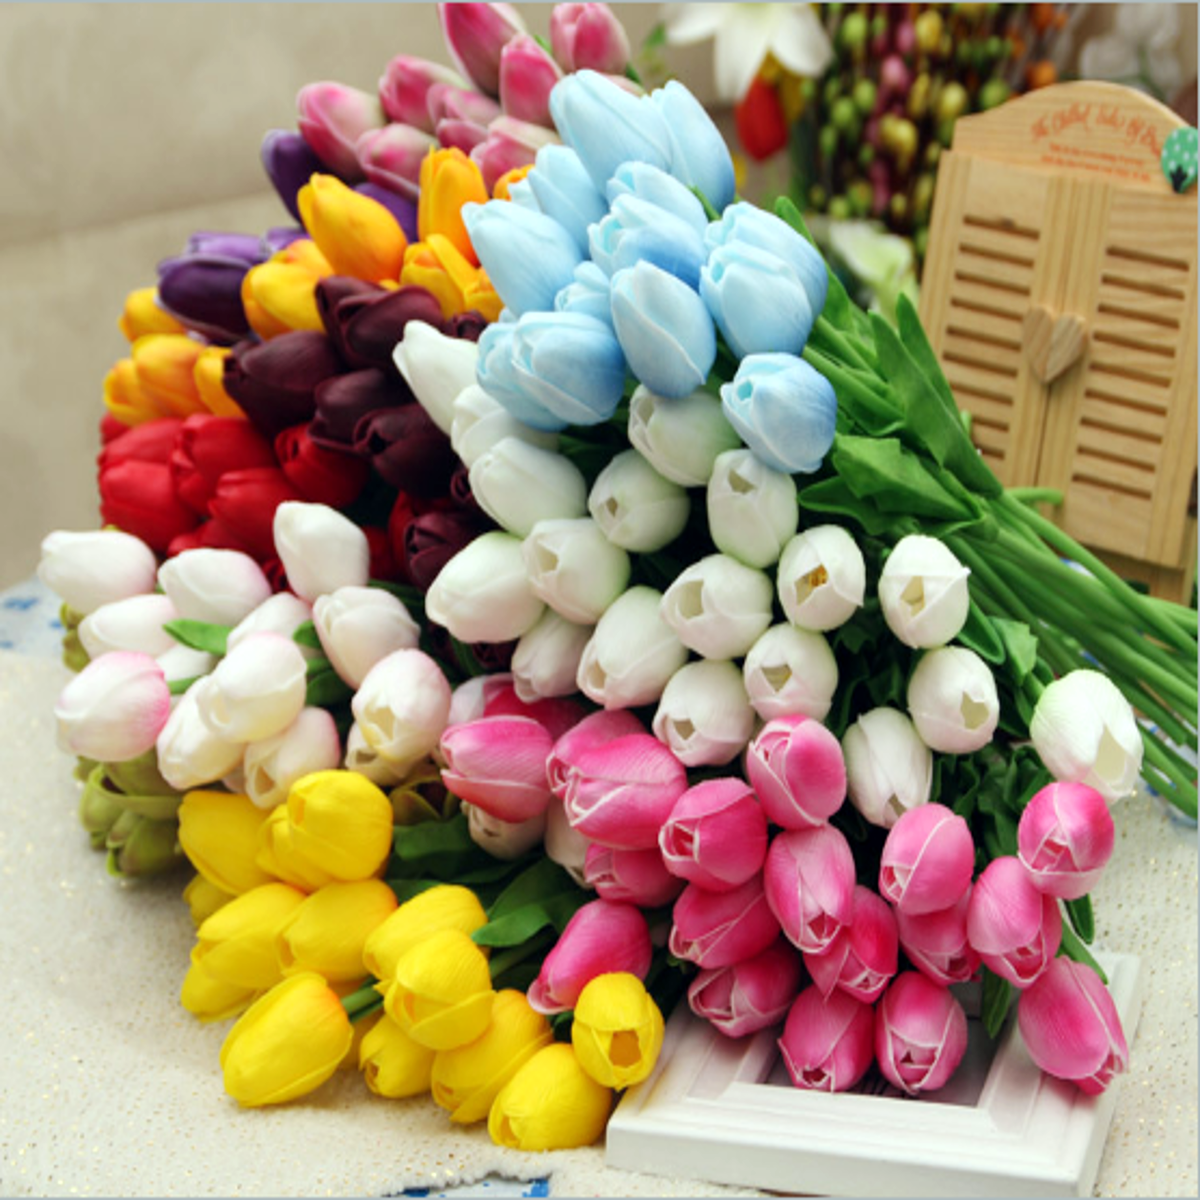 10pcspack artificial tulip flowers single long stem bouquet flower 10pcspack artificial tulip flowers single long stem bouquet flower wedding party decoration cheap izmirmasajfo